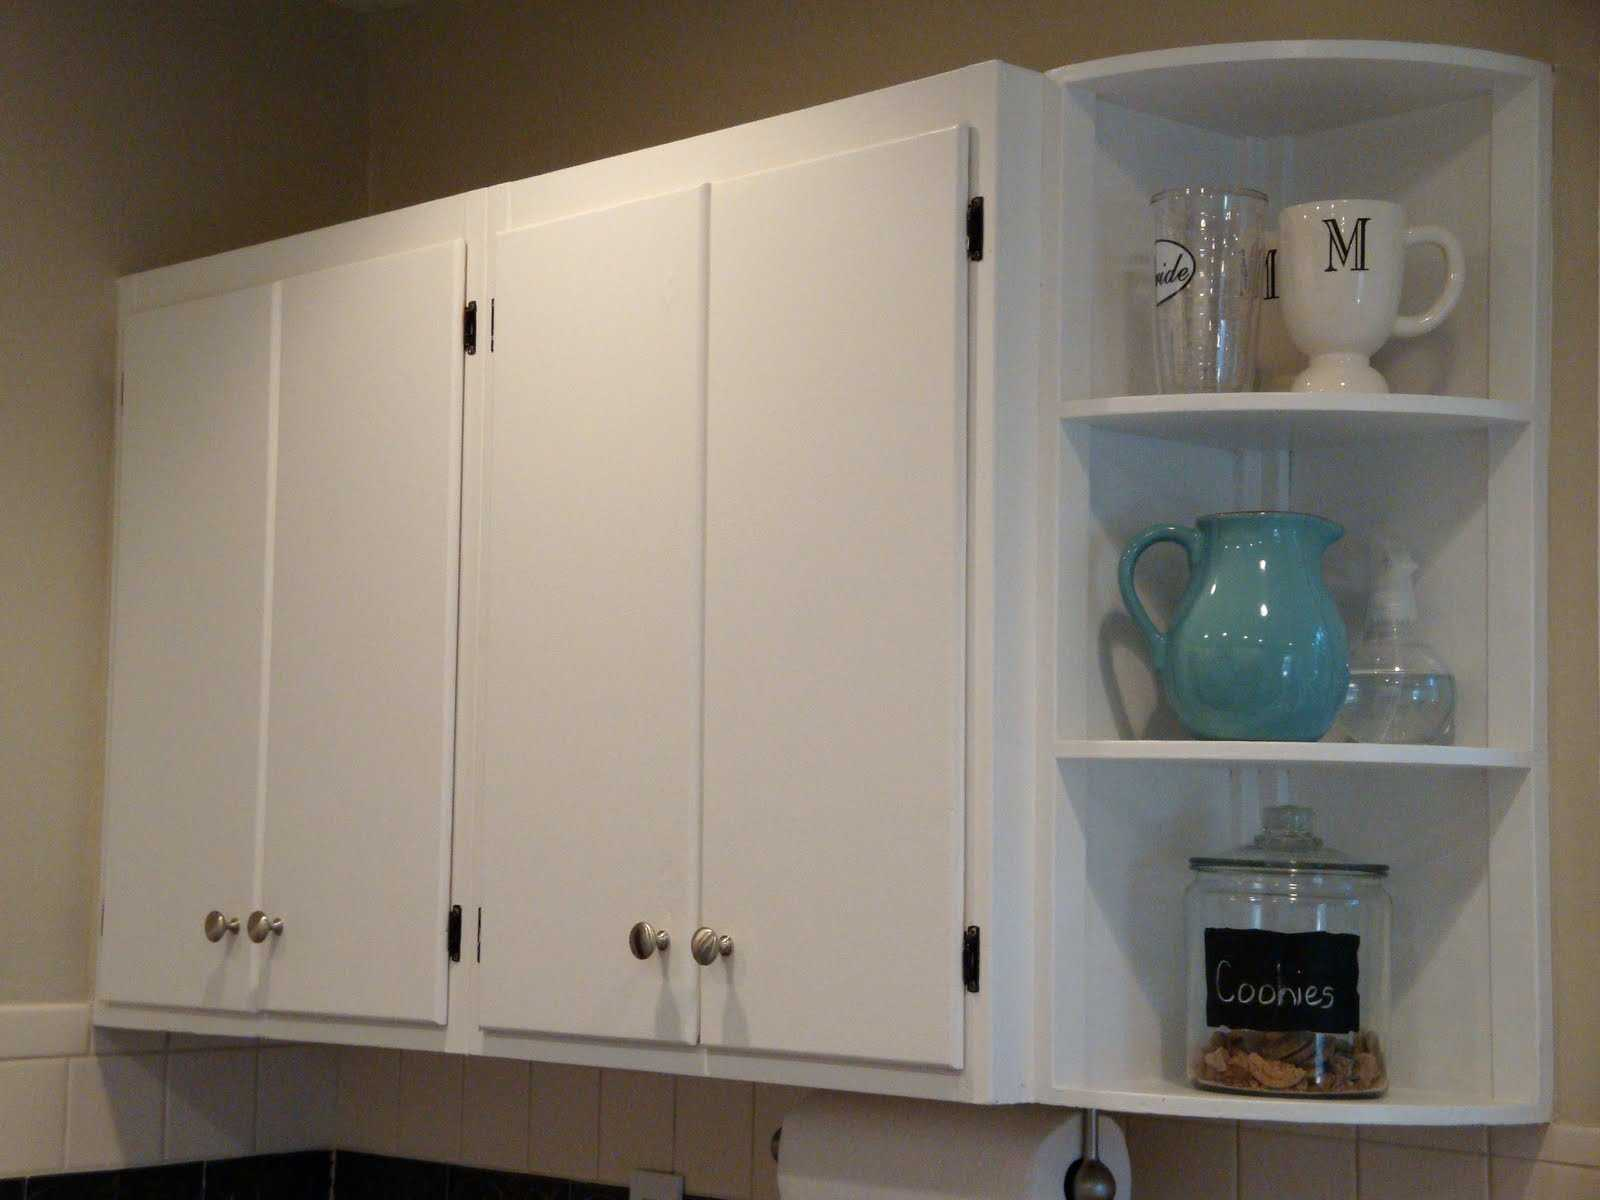 discount kitchen cabinets to improve your kitchens look kitchen cabinets for cheap beadboard discount white kitchen cabinets